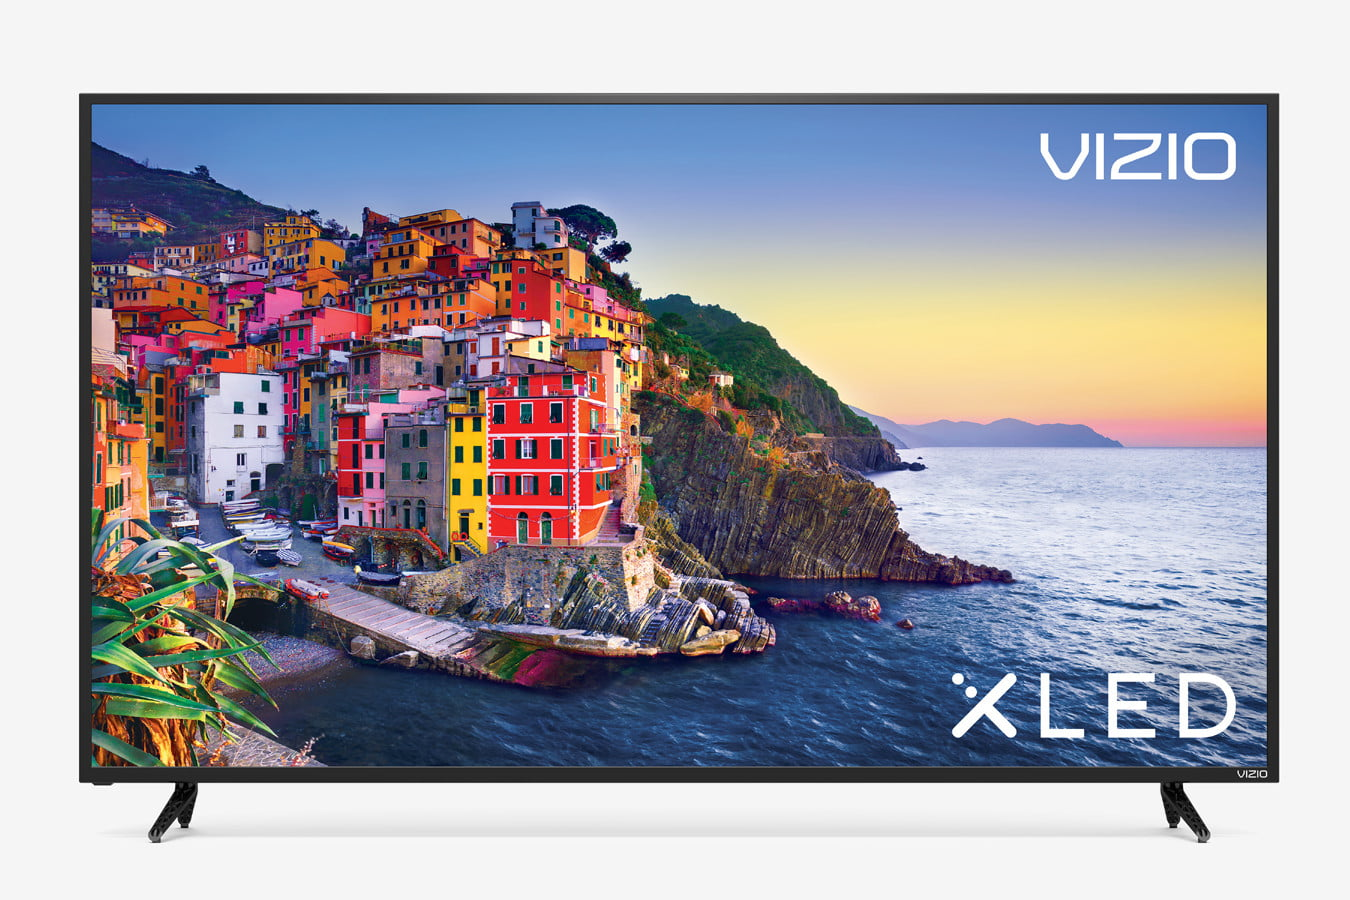 best 4k tv deals a781a053 2087 4d1c 86a0 aa4f4be934be 7 0990c107afa54e9753df65ff3b0cfb68